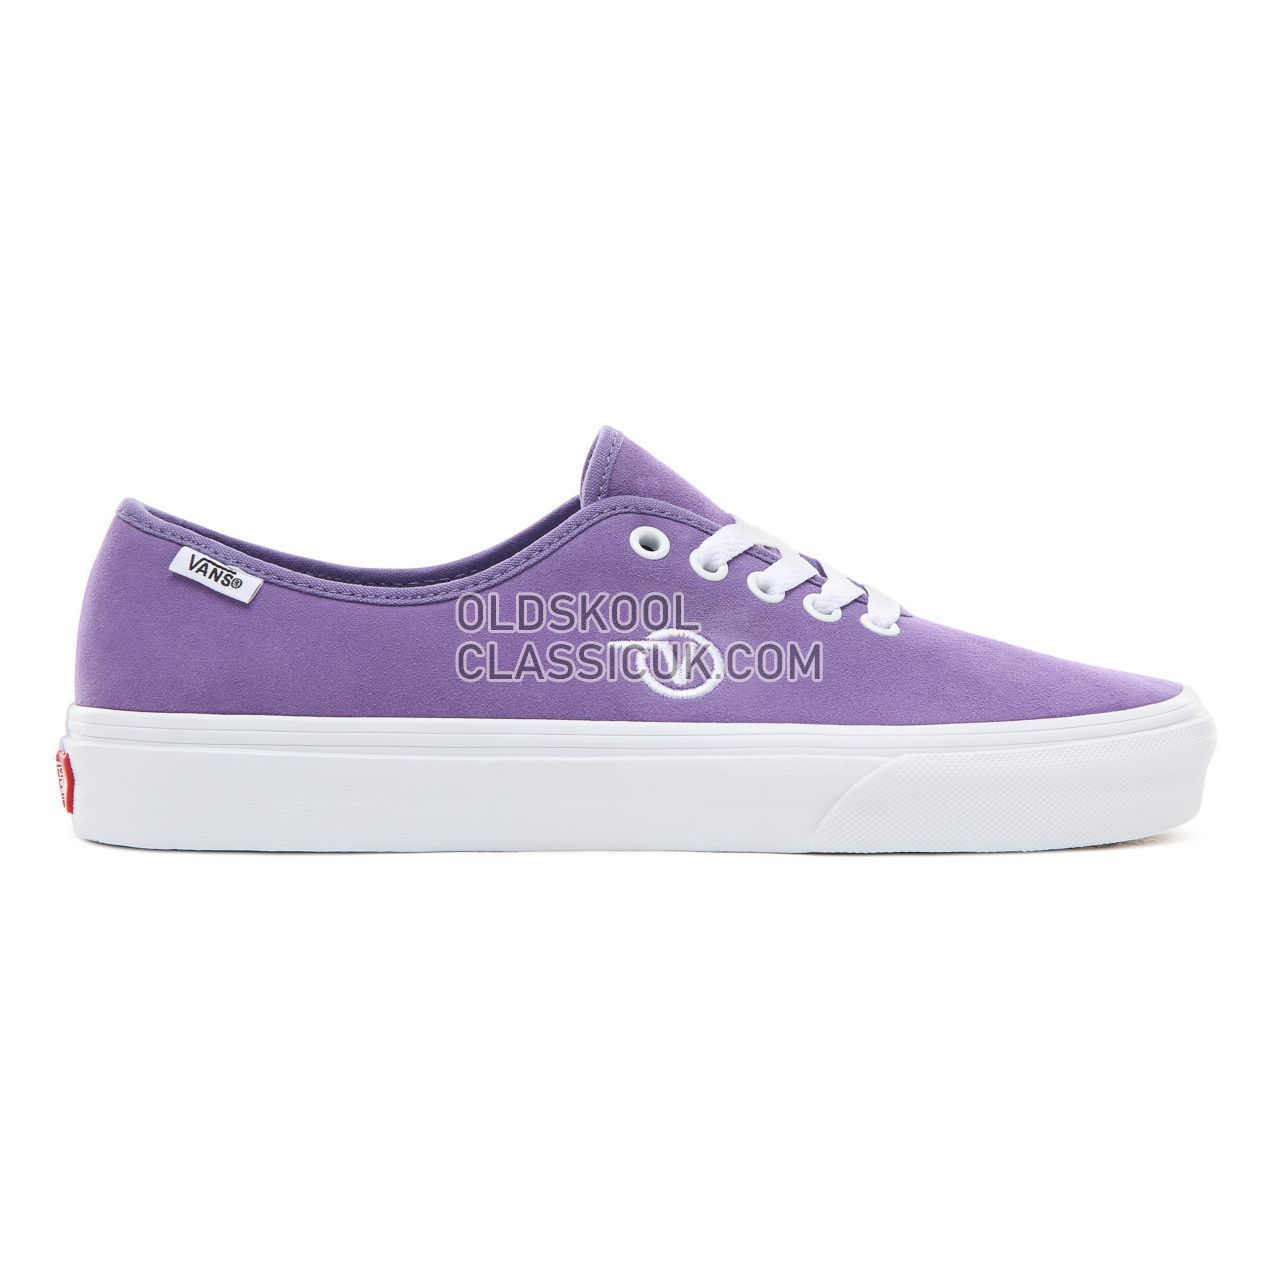 36be9eb3603e Vans Circle V Authentic One Piece Sneakers Mens (Circle V) Veronica Suede  VA3XIMS4K ...